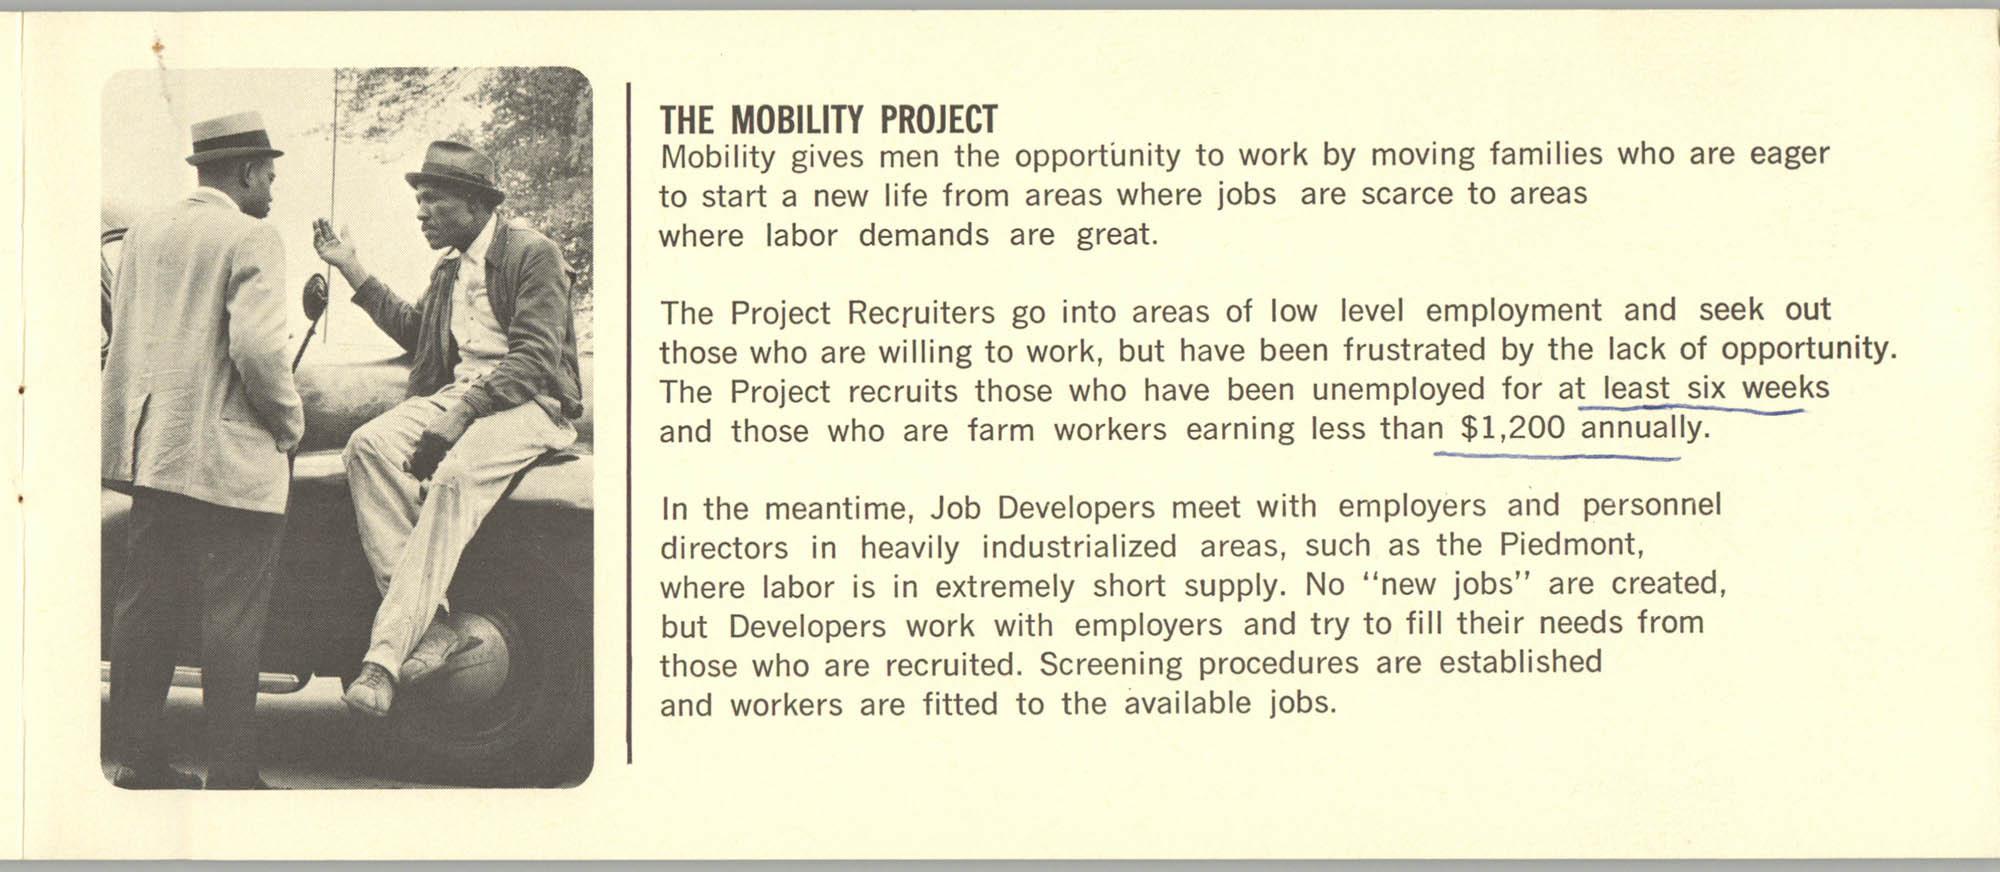 The Mobility Project, Page 2